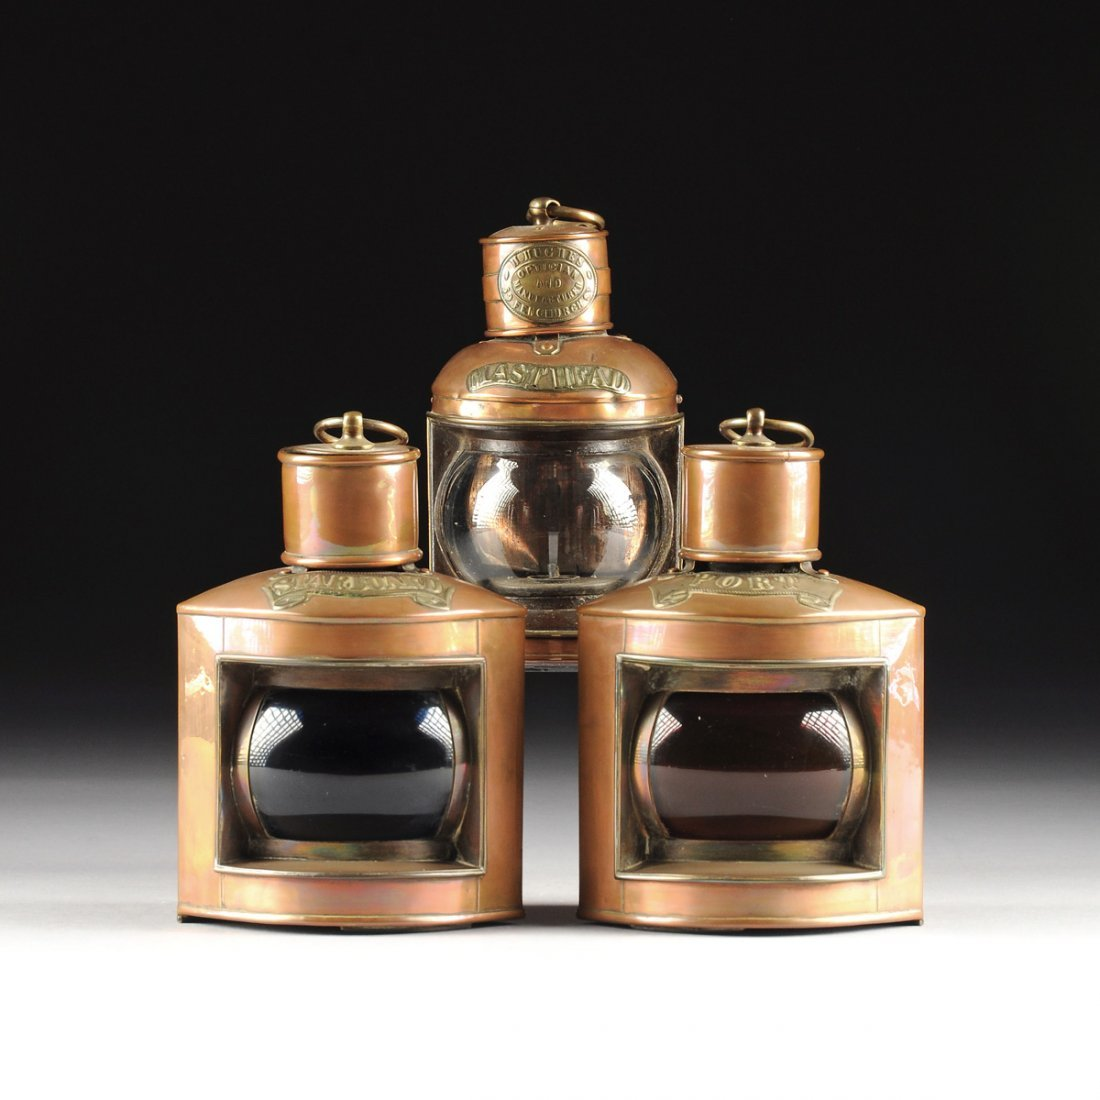 A GROUP OF THREE VICTORIAN BRASS MOUNTED COPPER SHIP